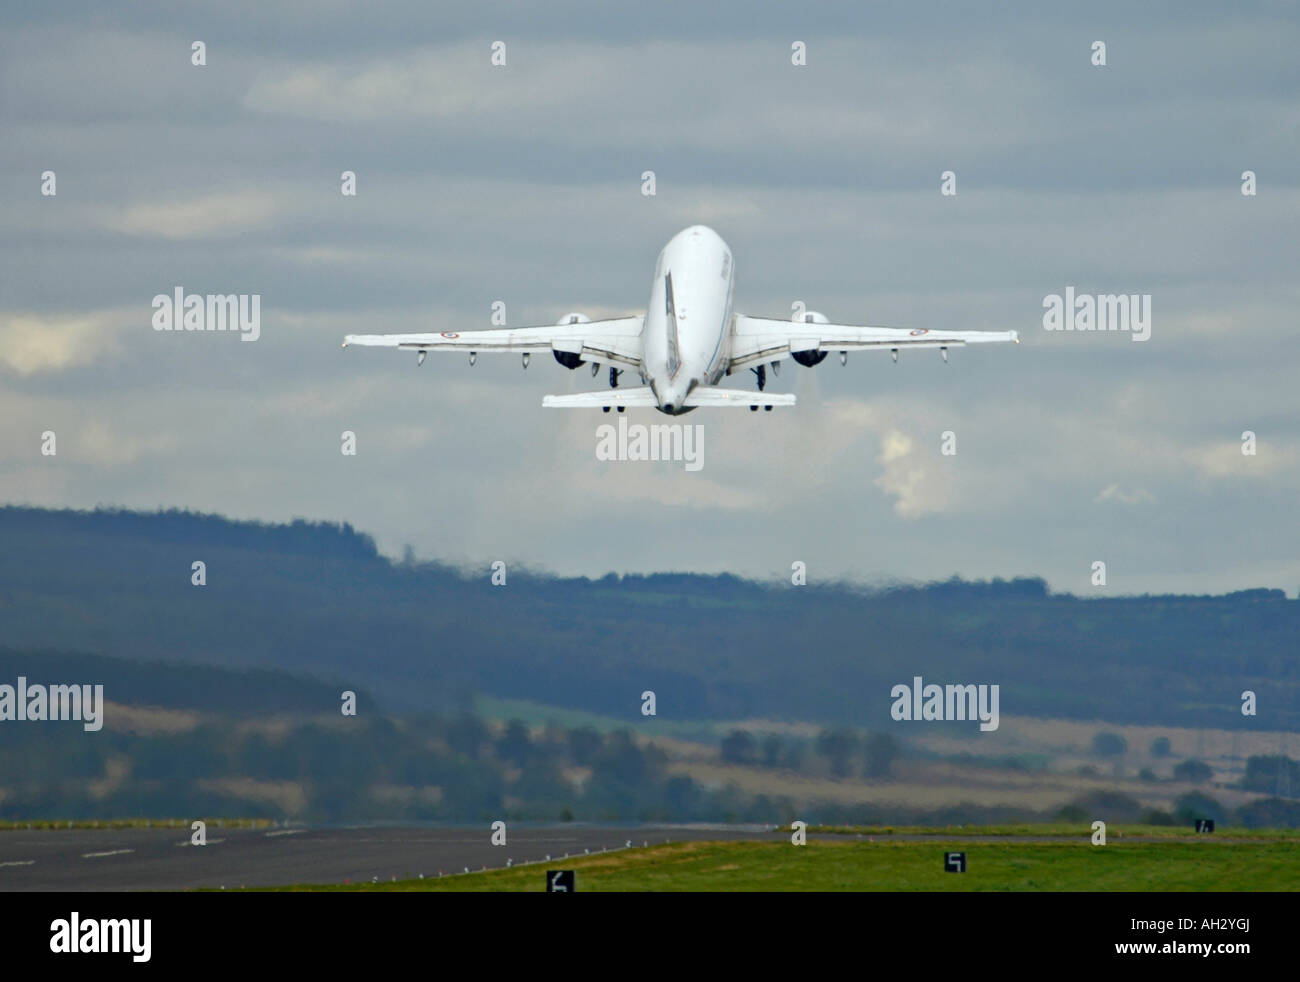 French Airbus 310-340 Based at Charles de Gaulle (Roissy) Twin Engine Airliner Built by The Airbus Consortium - Stock Image